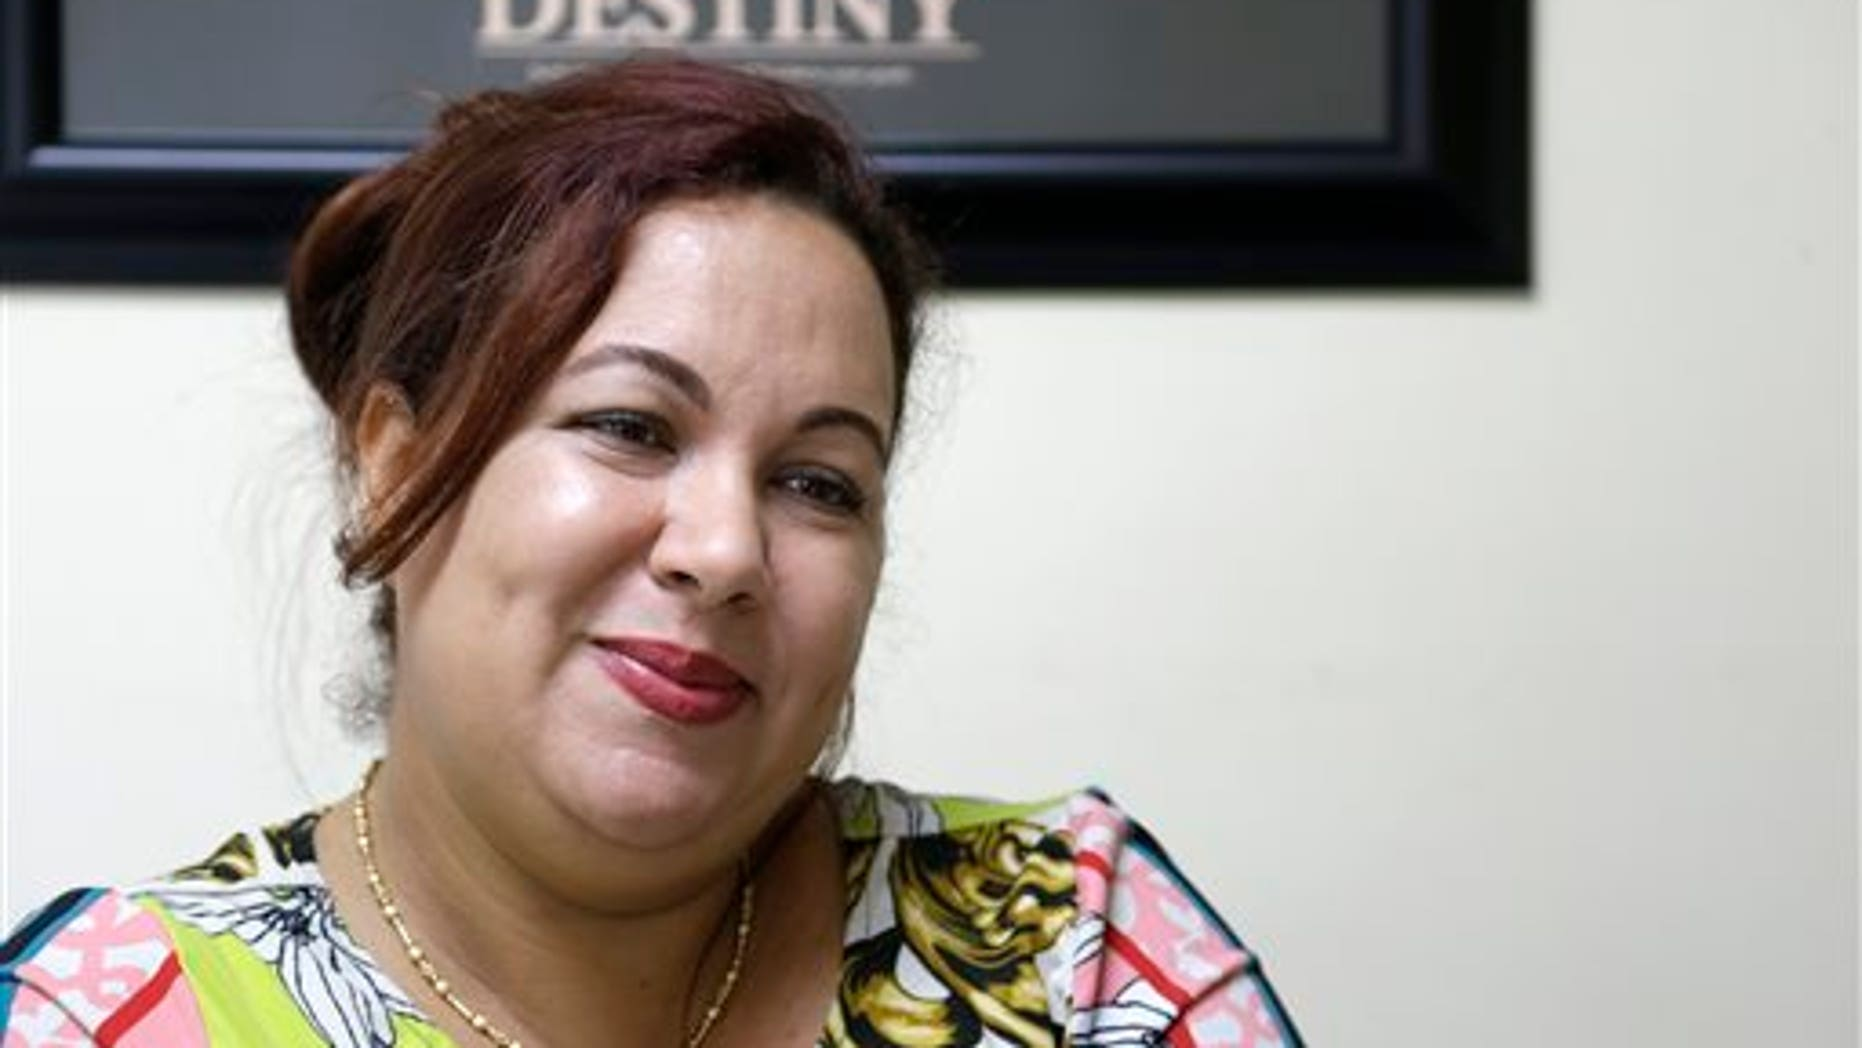 In this Sept. 19, 2013 photo, Irka Ducasse Blanes, a recent Cuban immigrant, smiles during an interview at a tax preparation office where she works in Miami. Since 2002, the number of Cubans leaving has hovered around 30,000 annually, making the last 10 years the largest exodus since the start of the revolution. The influx of new arrivals is evident throughout Miami, the heart of Cubas exile population. (AP Photo/Wilfredo Lee)